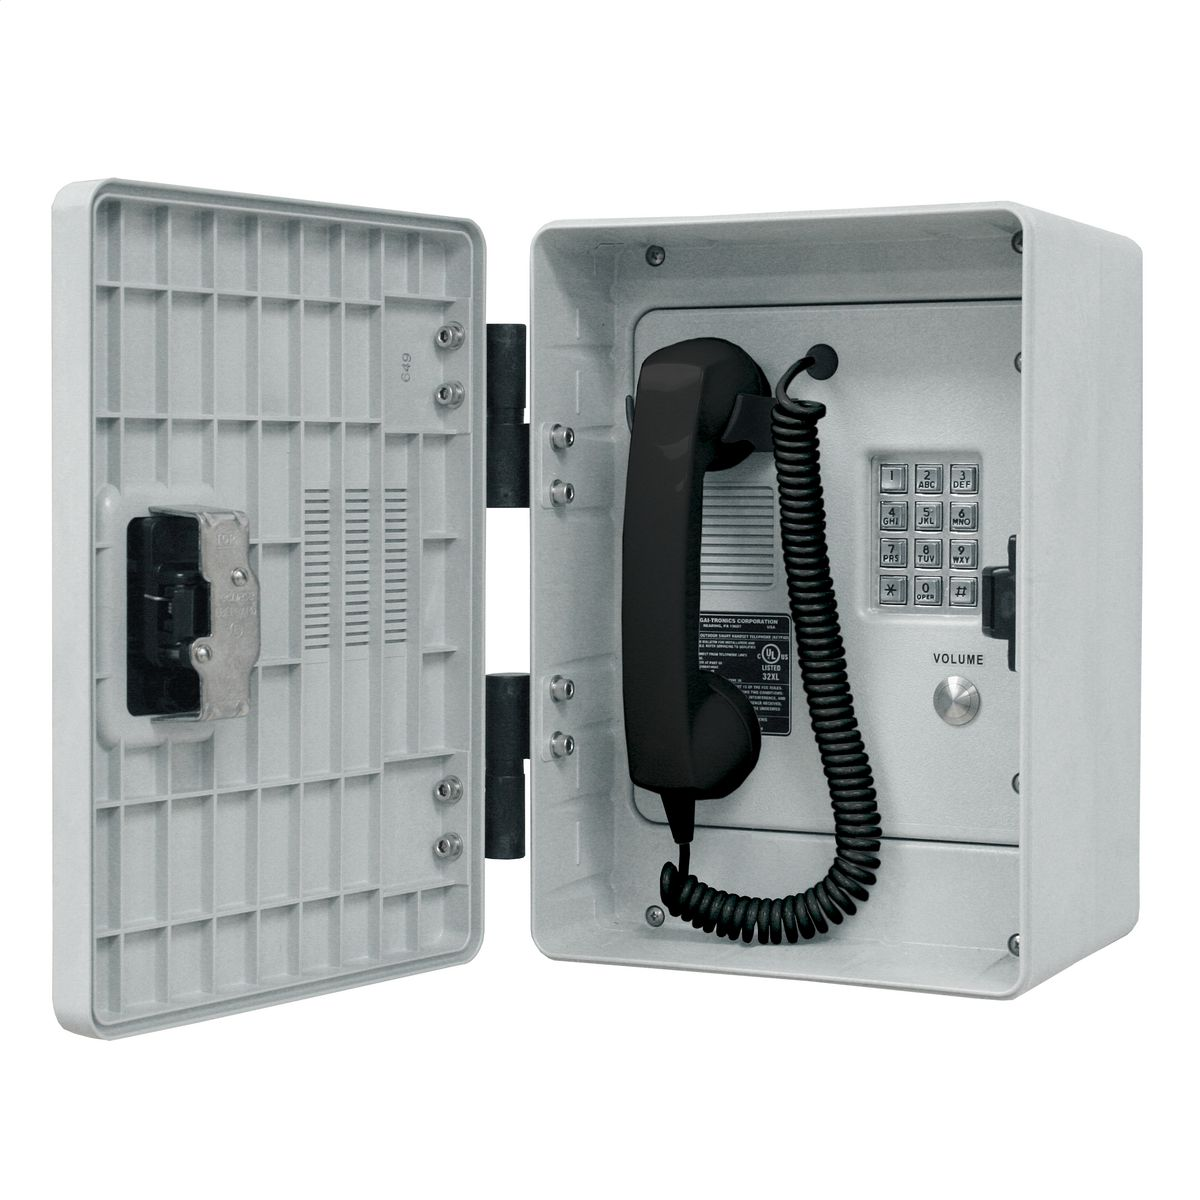 1 More Items In Gallery Outdoor Rugged Telephone Voip